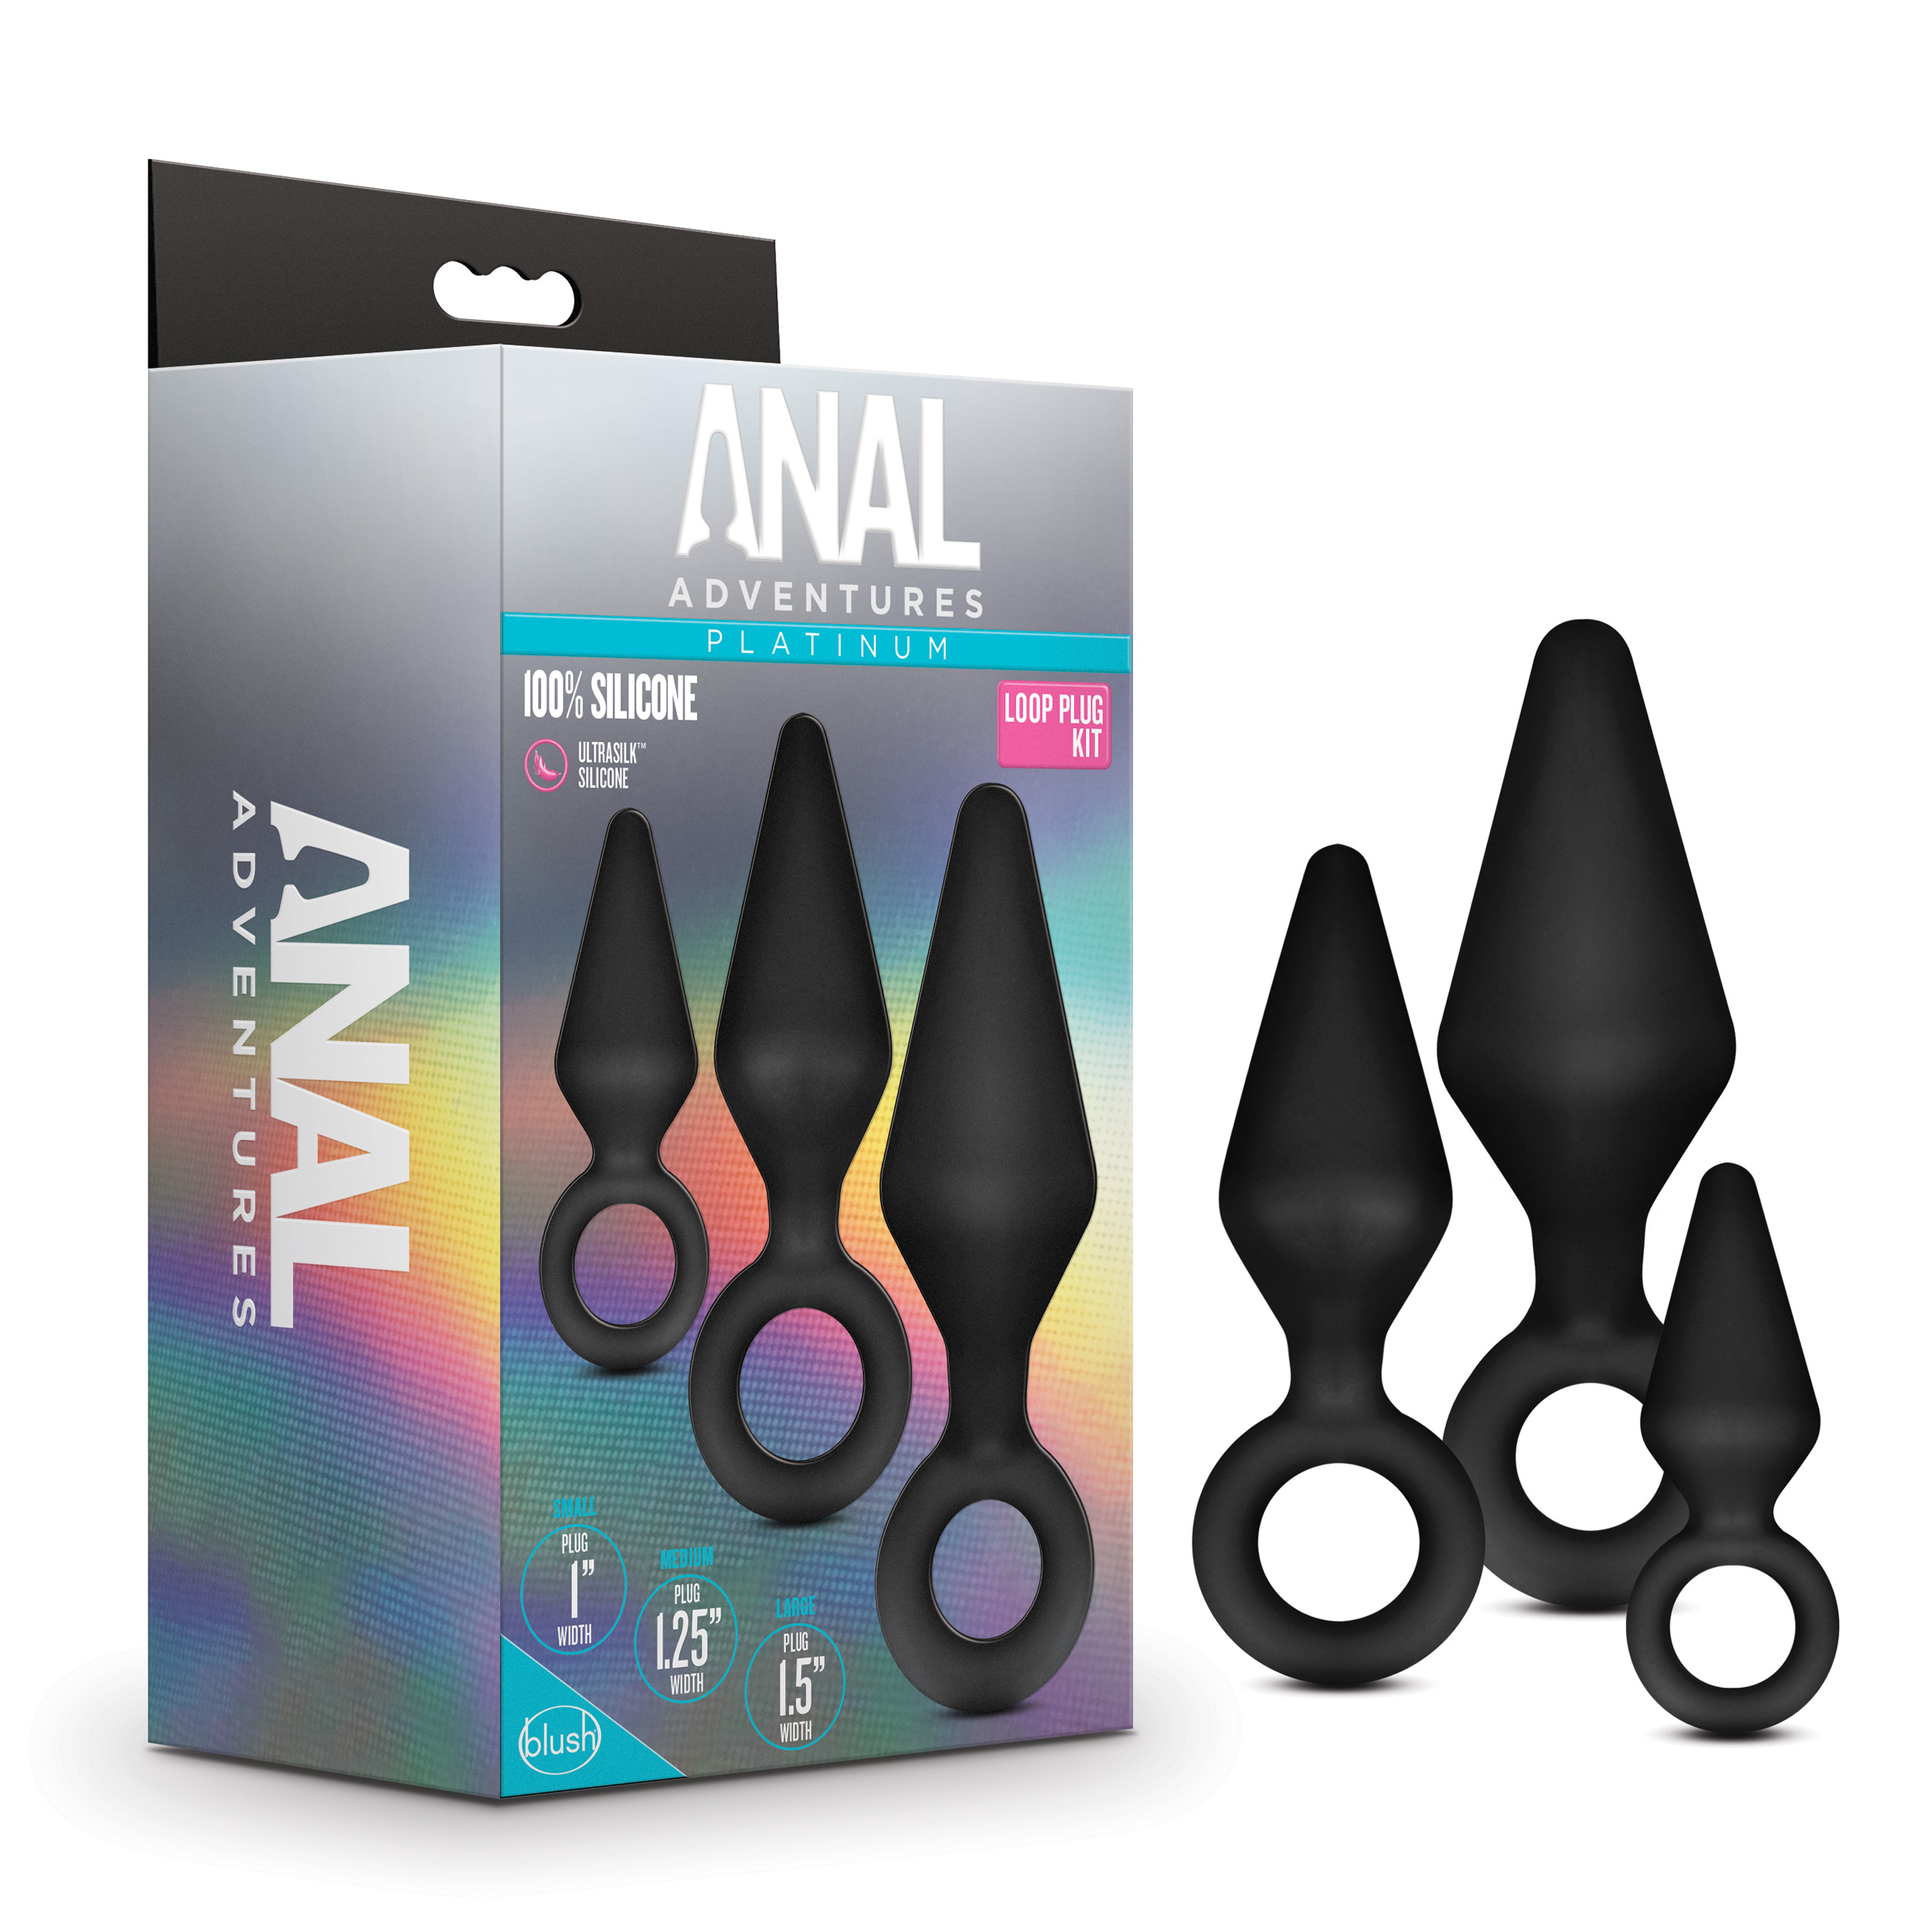 Anal Adventures Platinum - Silicone Loop Plug Kit - Black